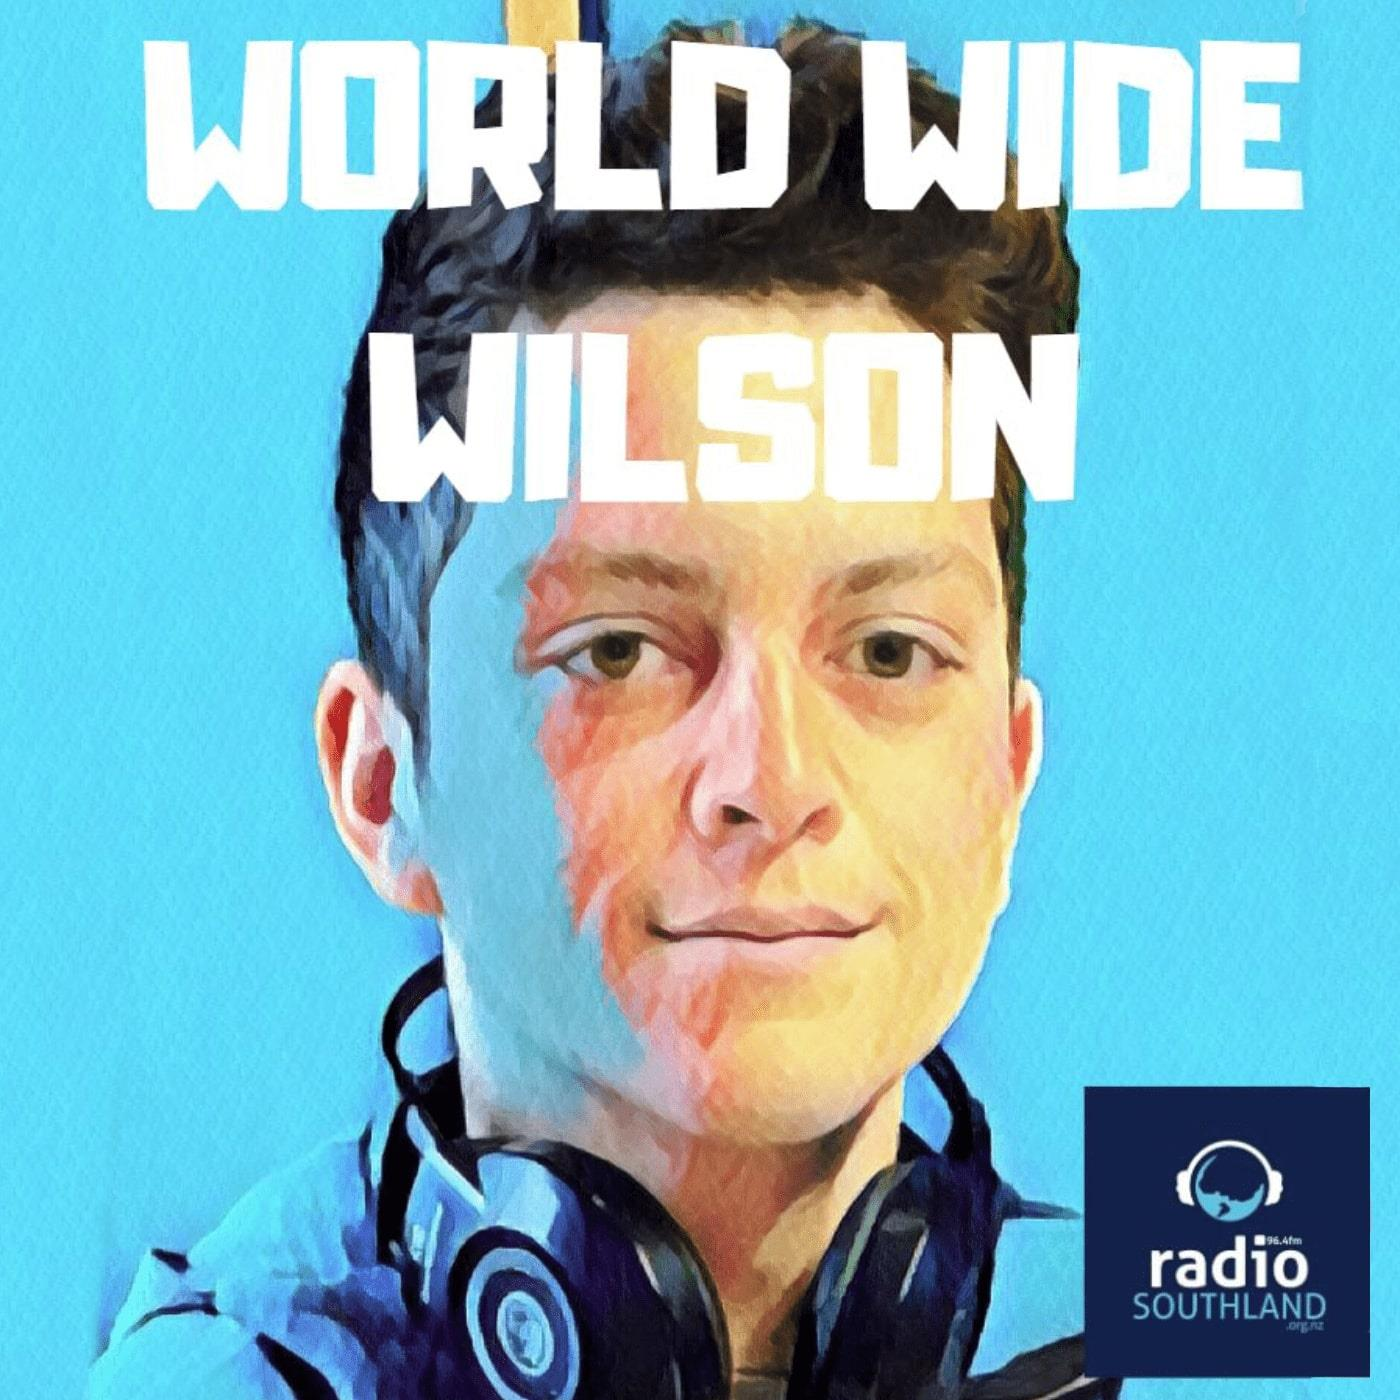 World Wide Wilson - Wilson Ludlow-28-01-2021